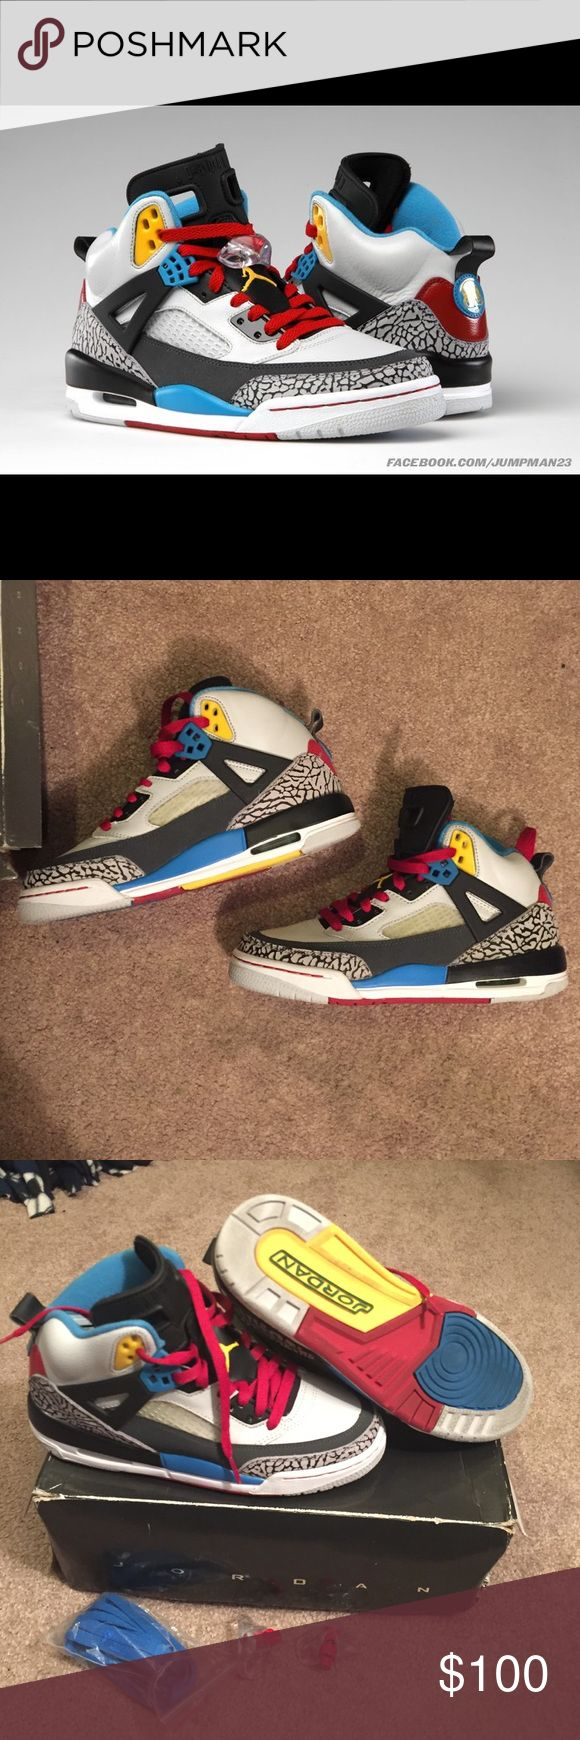 Jordan Spizike Bordeaux Great worn condition. Comes with blue replacement laces (still in packaging) and two lace locks. No creasing it toe. 10-10 condition, you can still see the jumpman on the insoles. Jordan Shoes Sneakers